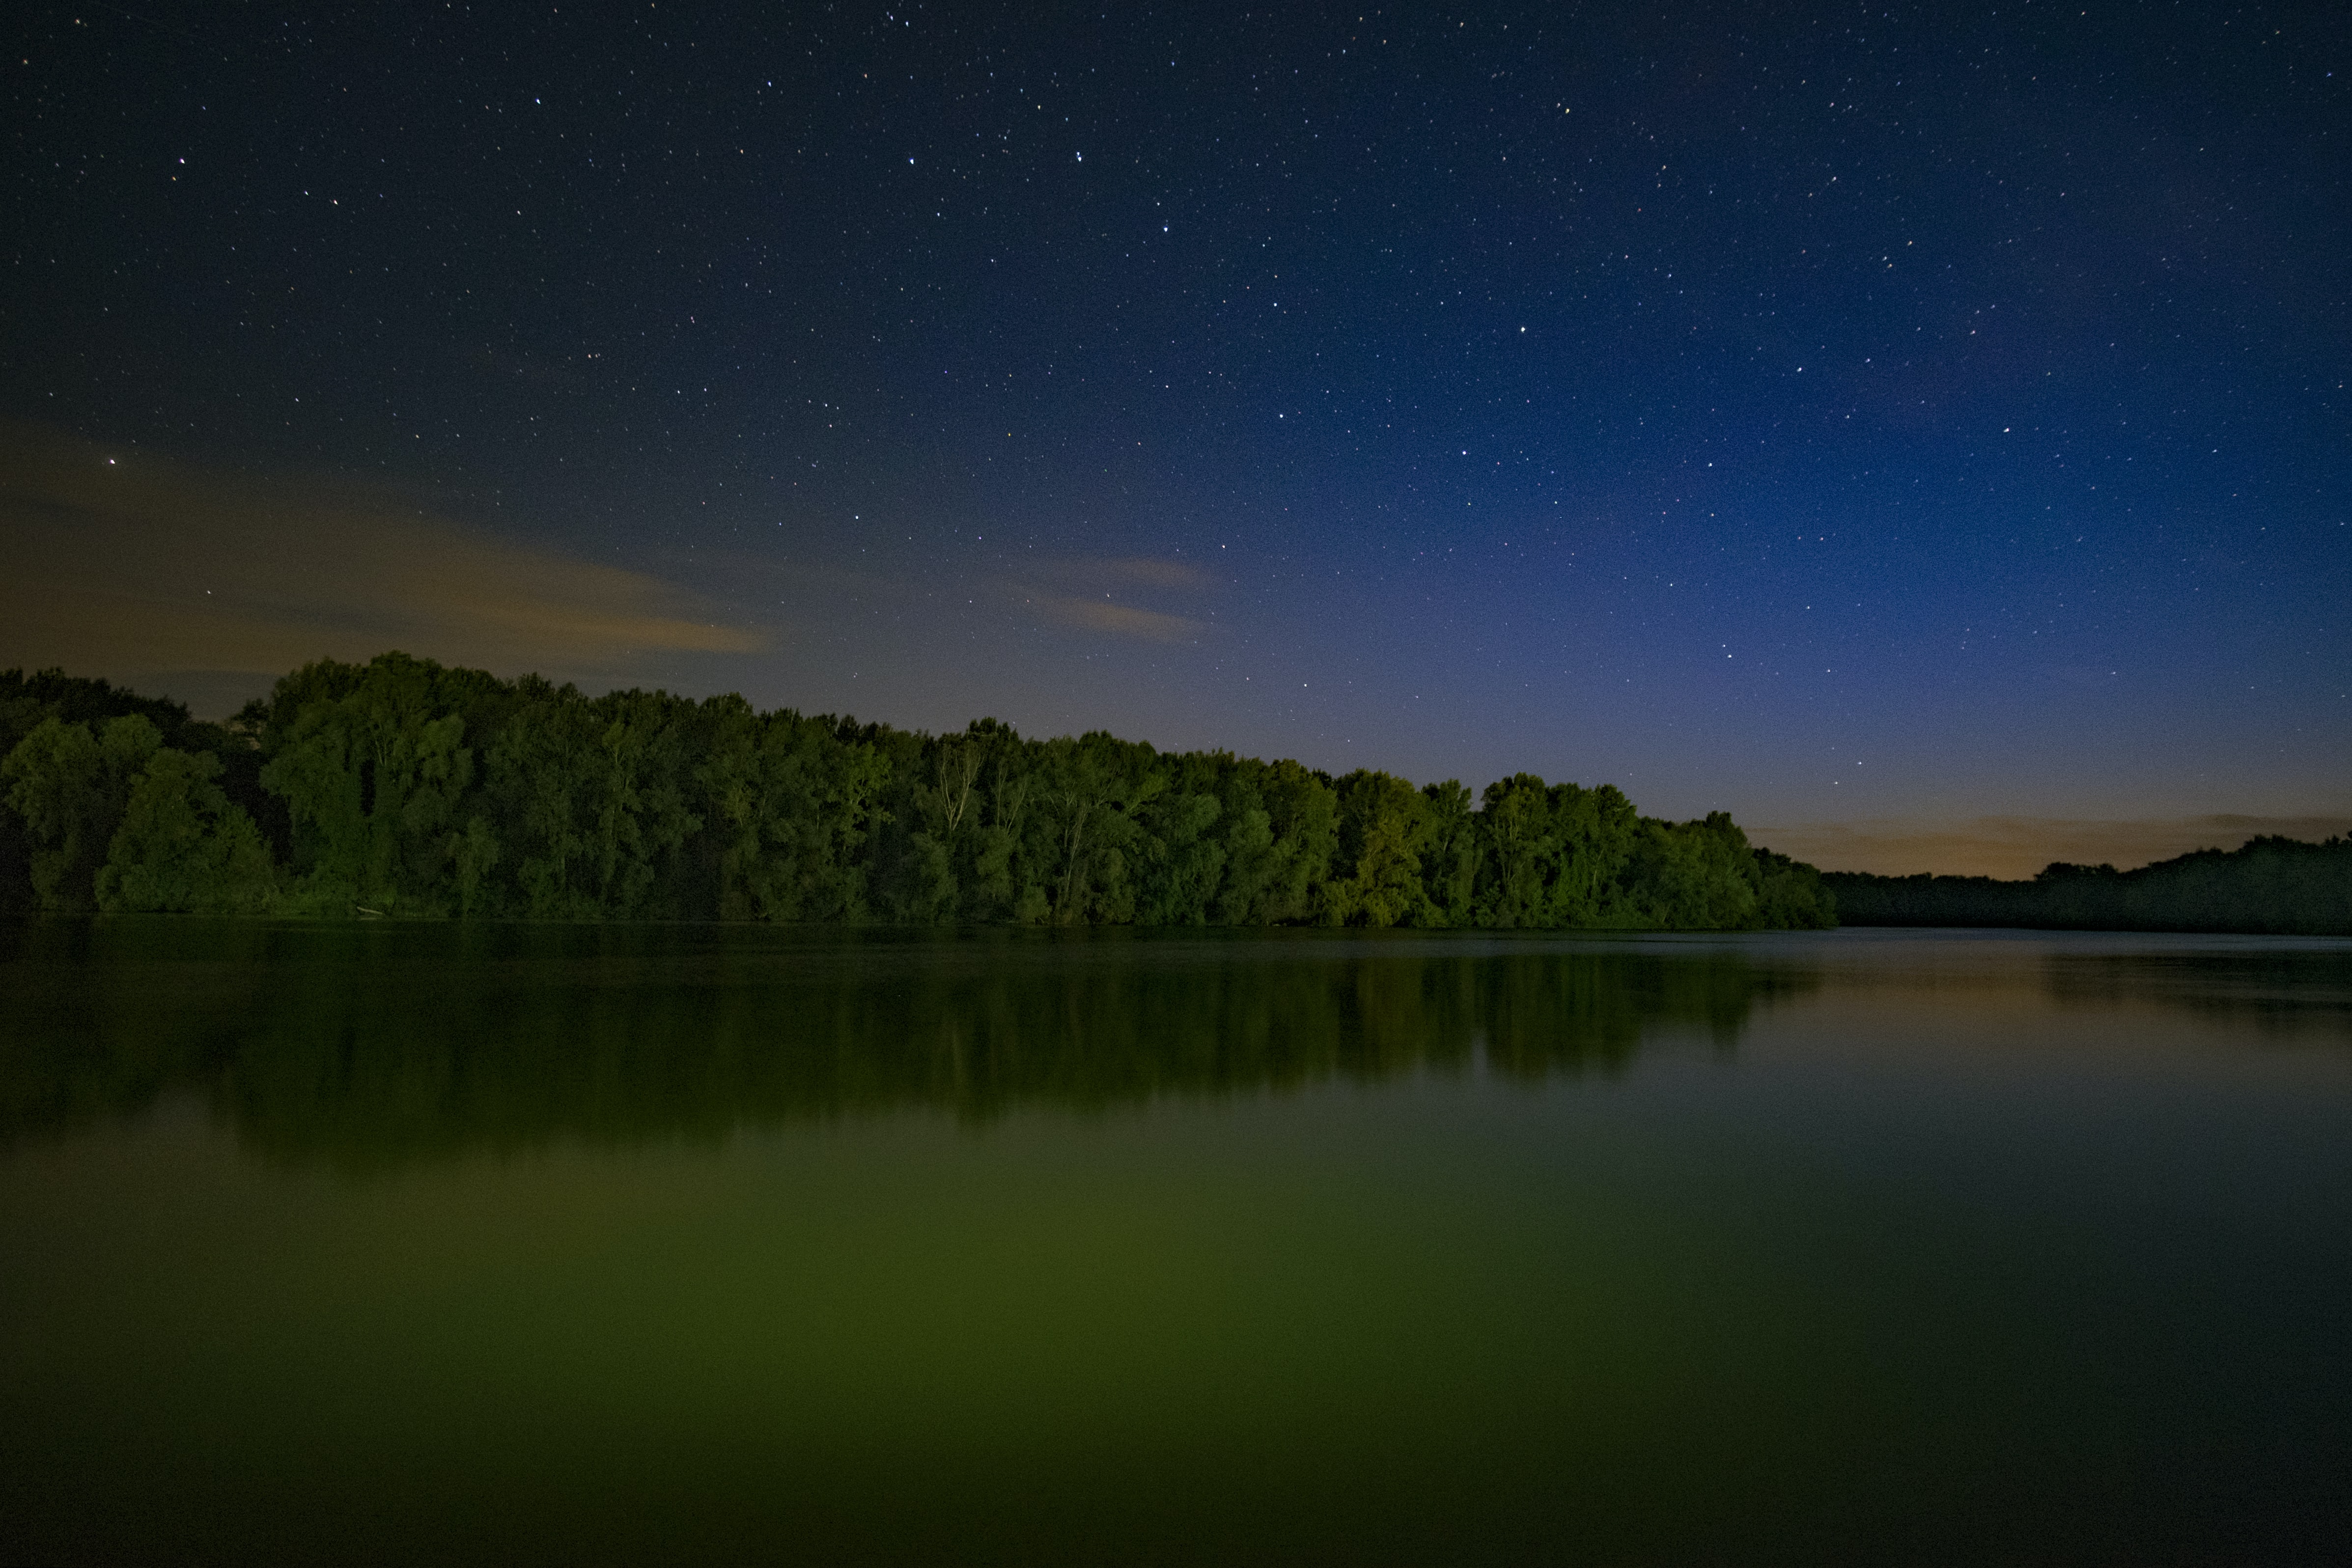 Starry sky over a lake surrounded with green forests